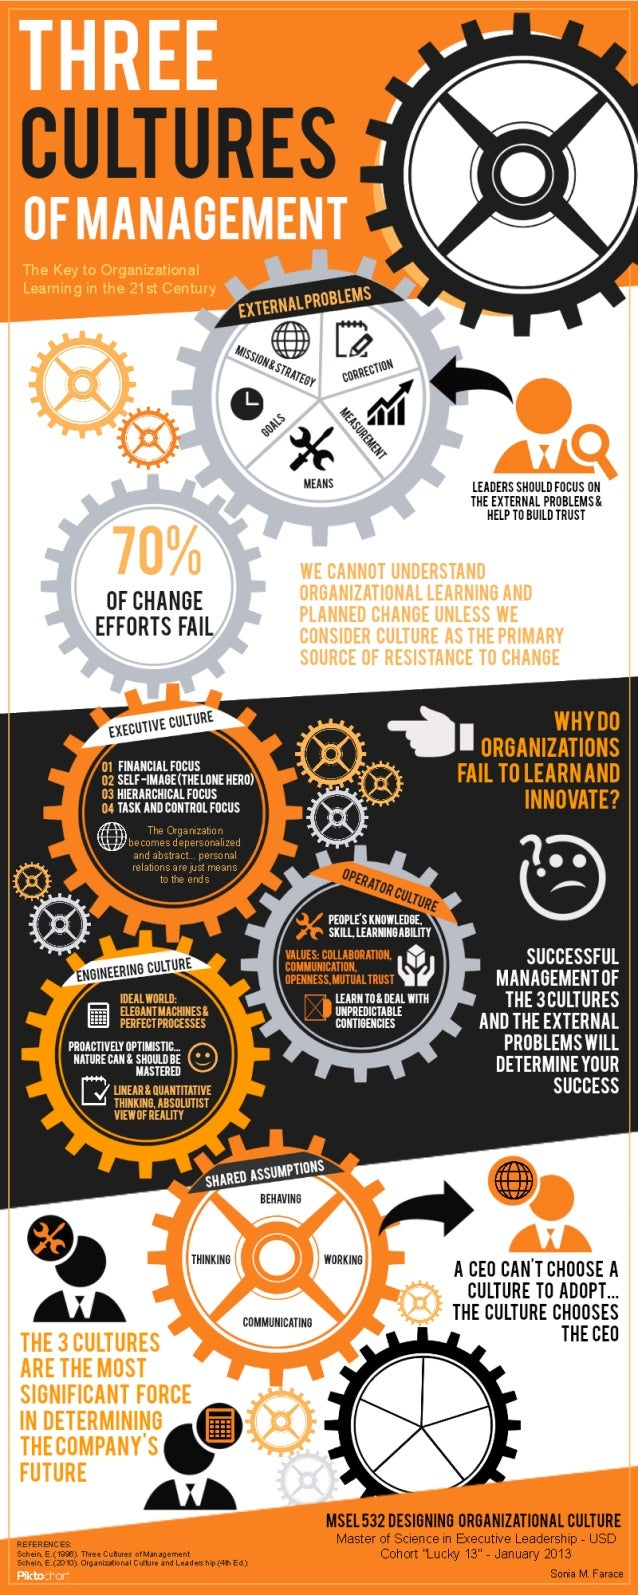 #Infographic - The 3 Cultures of Management — The Key to Organizational Learning in the 21st Century